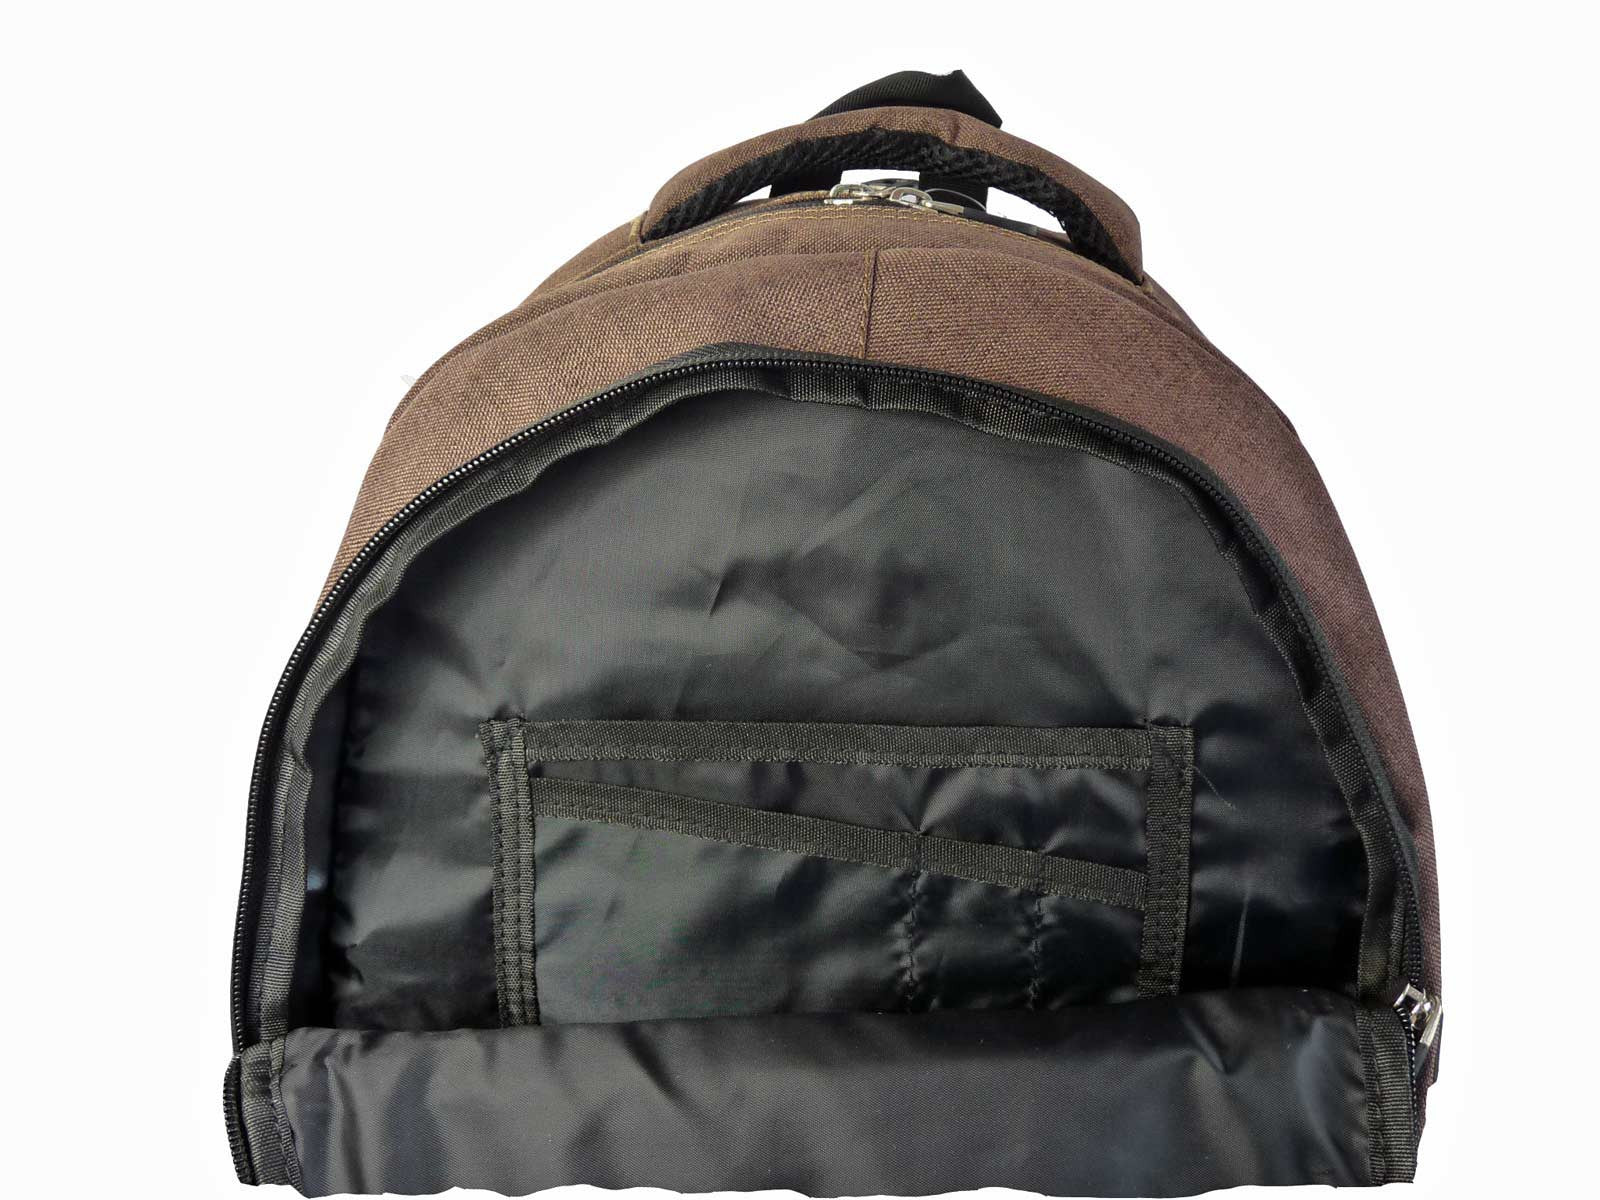 Laptop Macbook Backpack Rucksack Bag RL43B Inside View